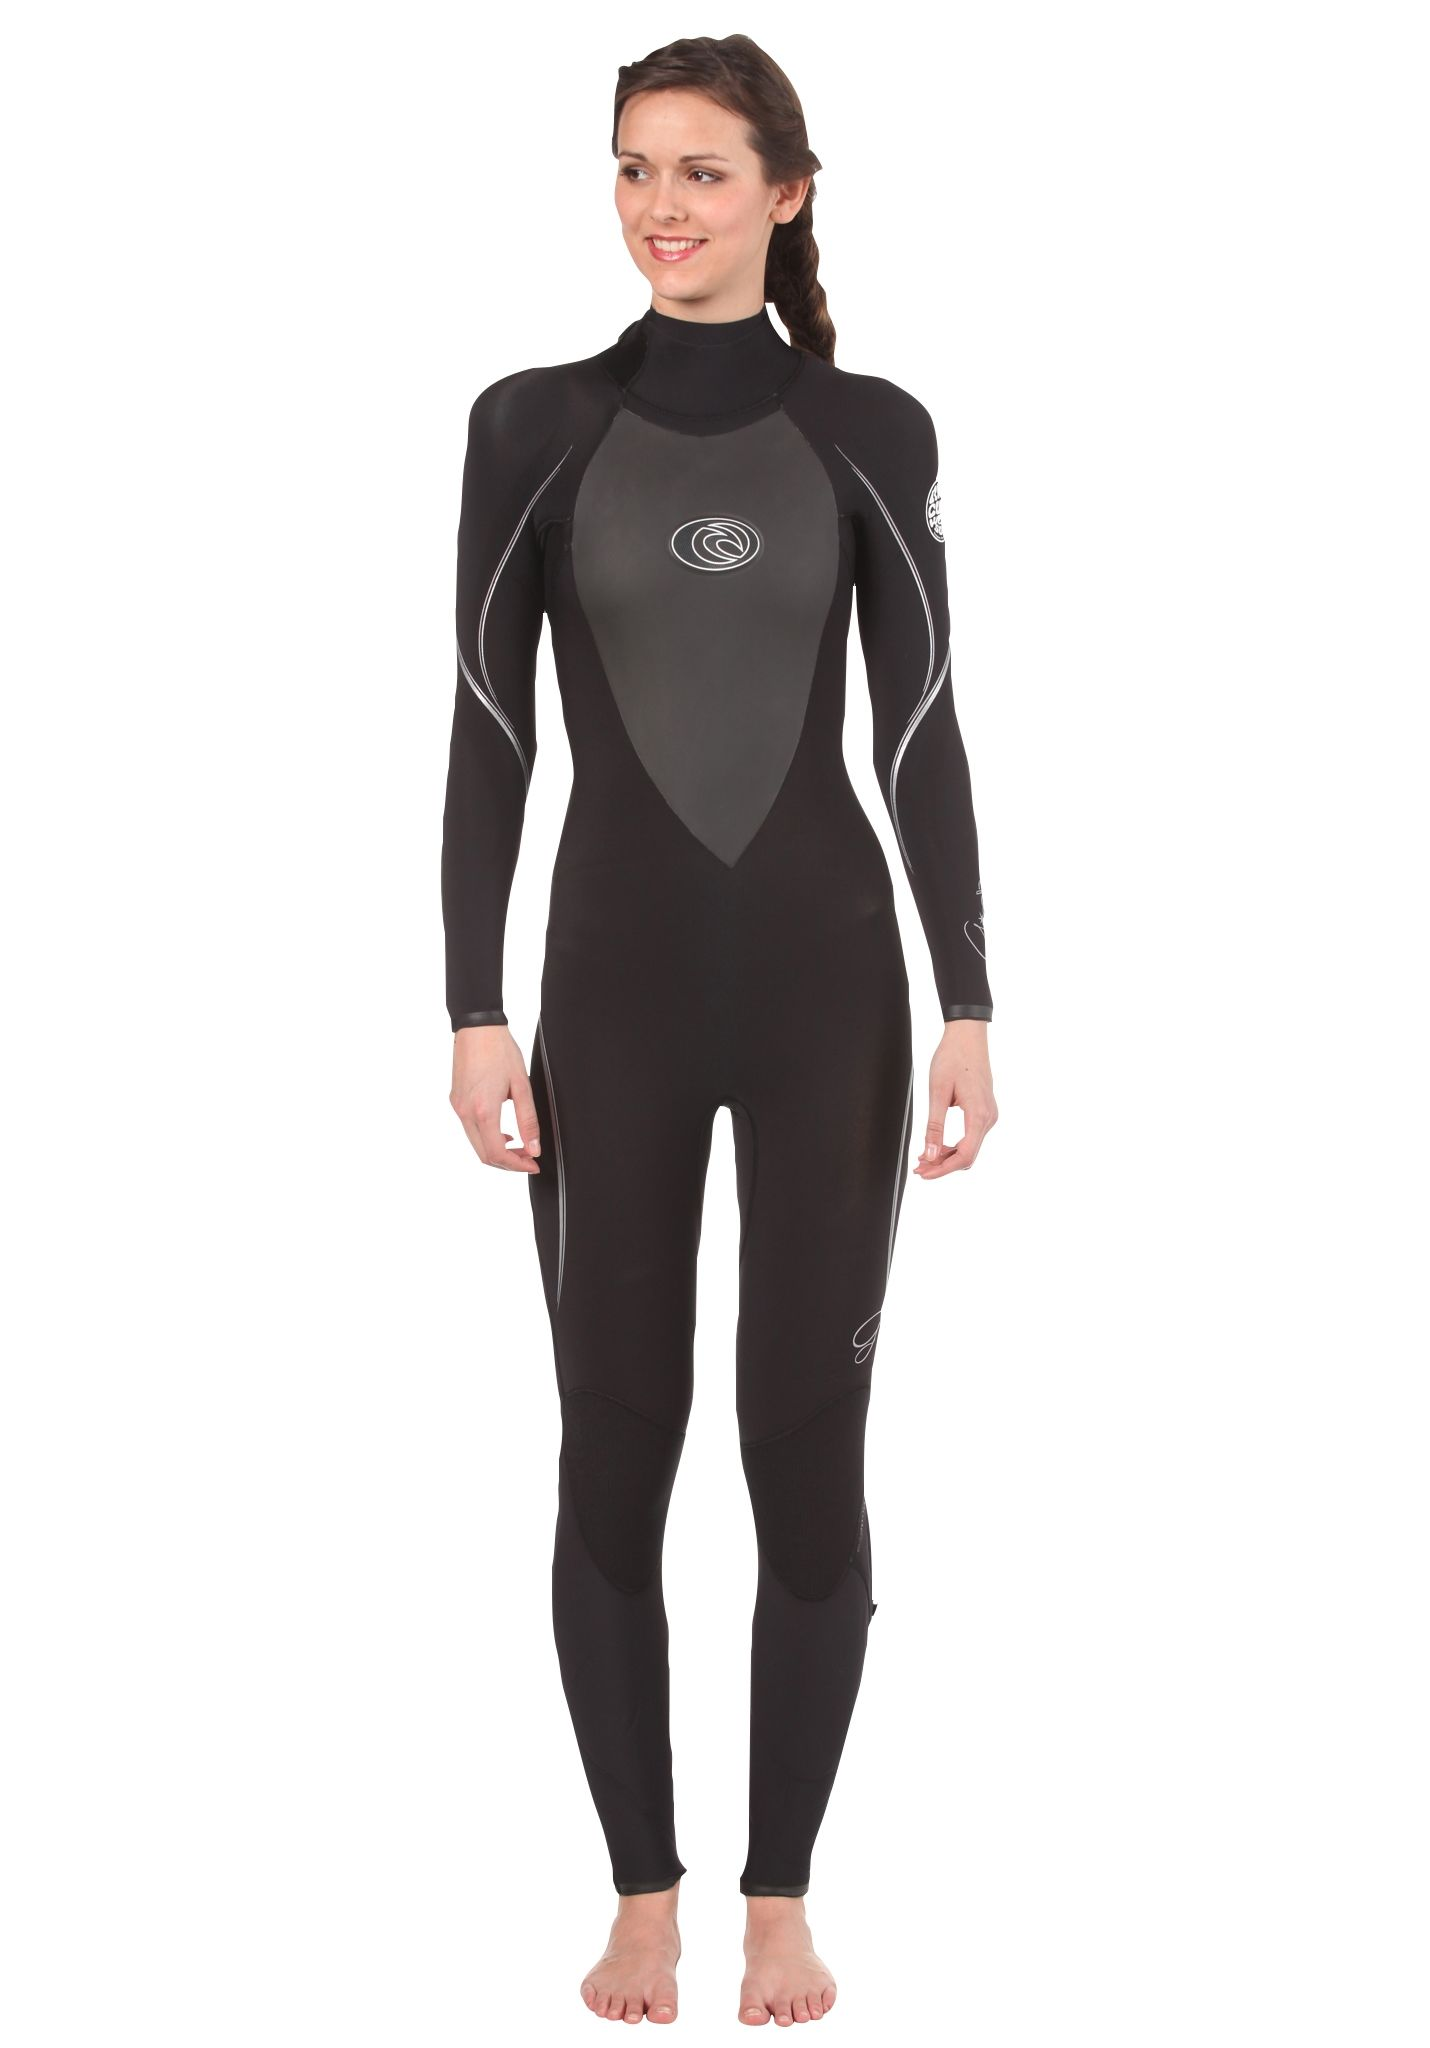 Rip Curl G Bomb 4 3 Steamer - Wetsuit for Women - Black - Planet Sports 00223cd36